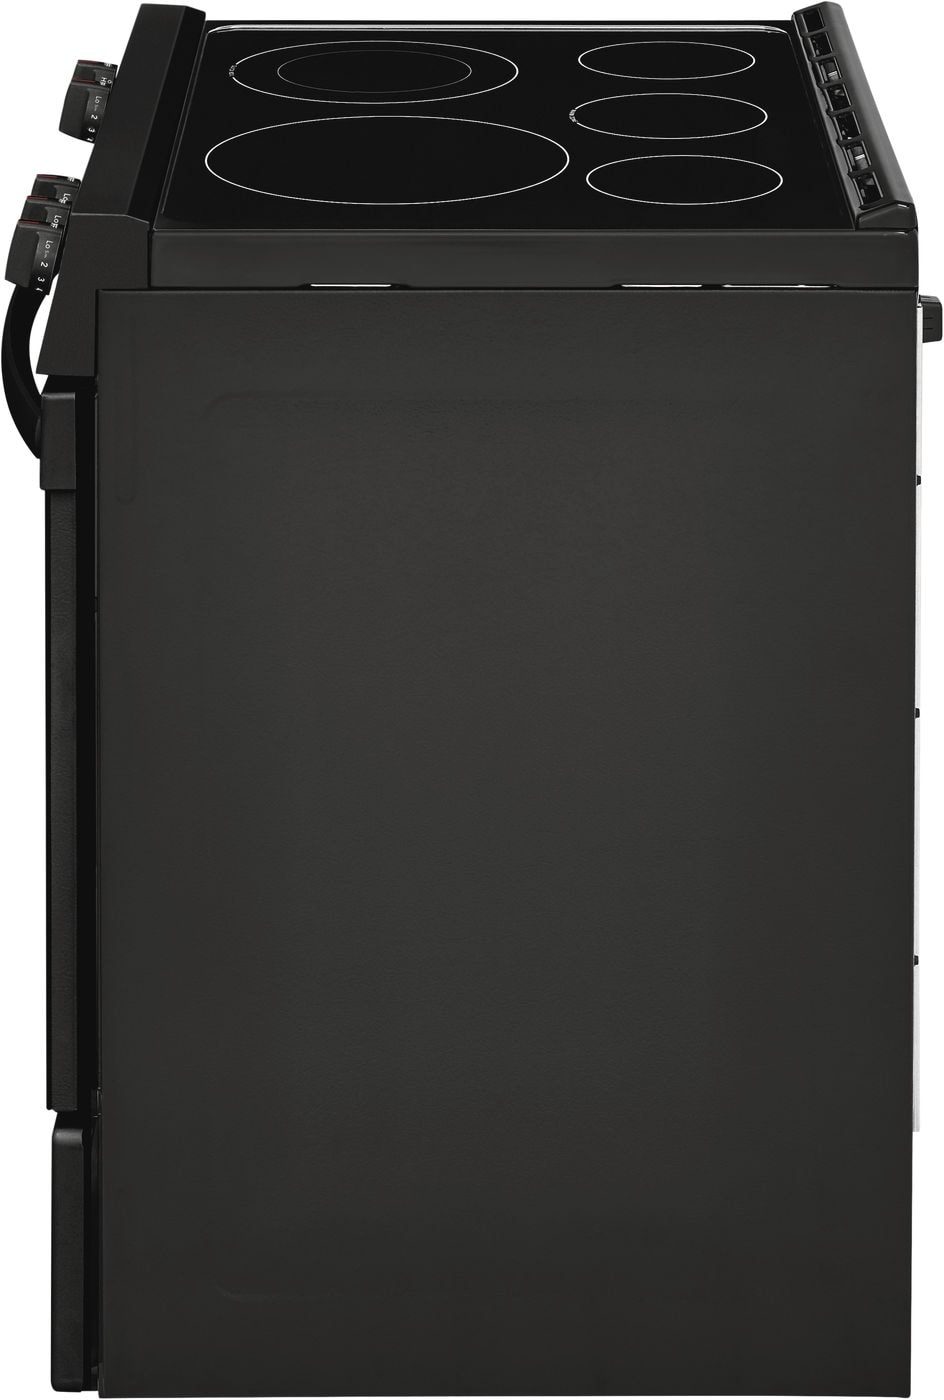 "Model: FFEH3054UB | Frigidaire 30"" Front Control Freestanding Electric Range"